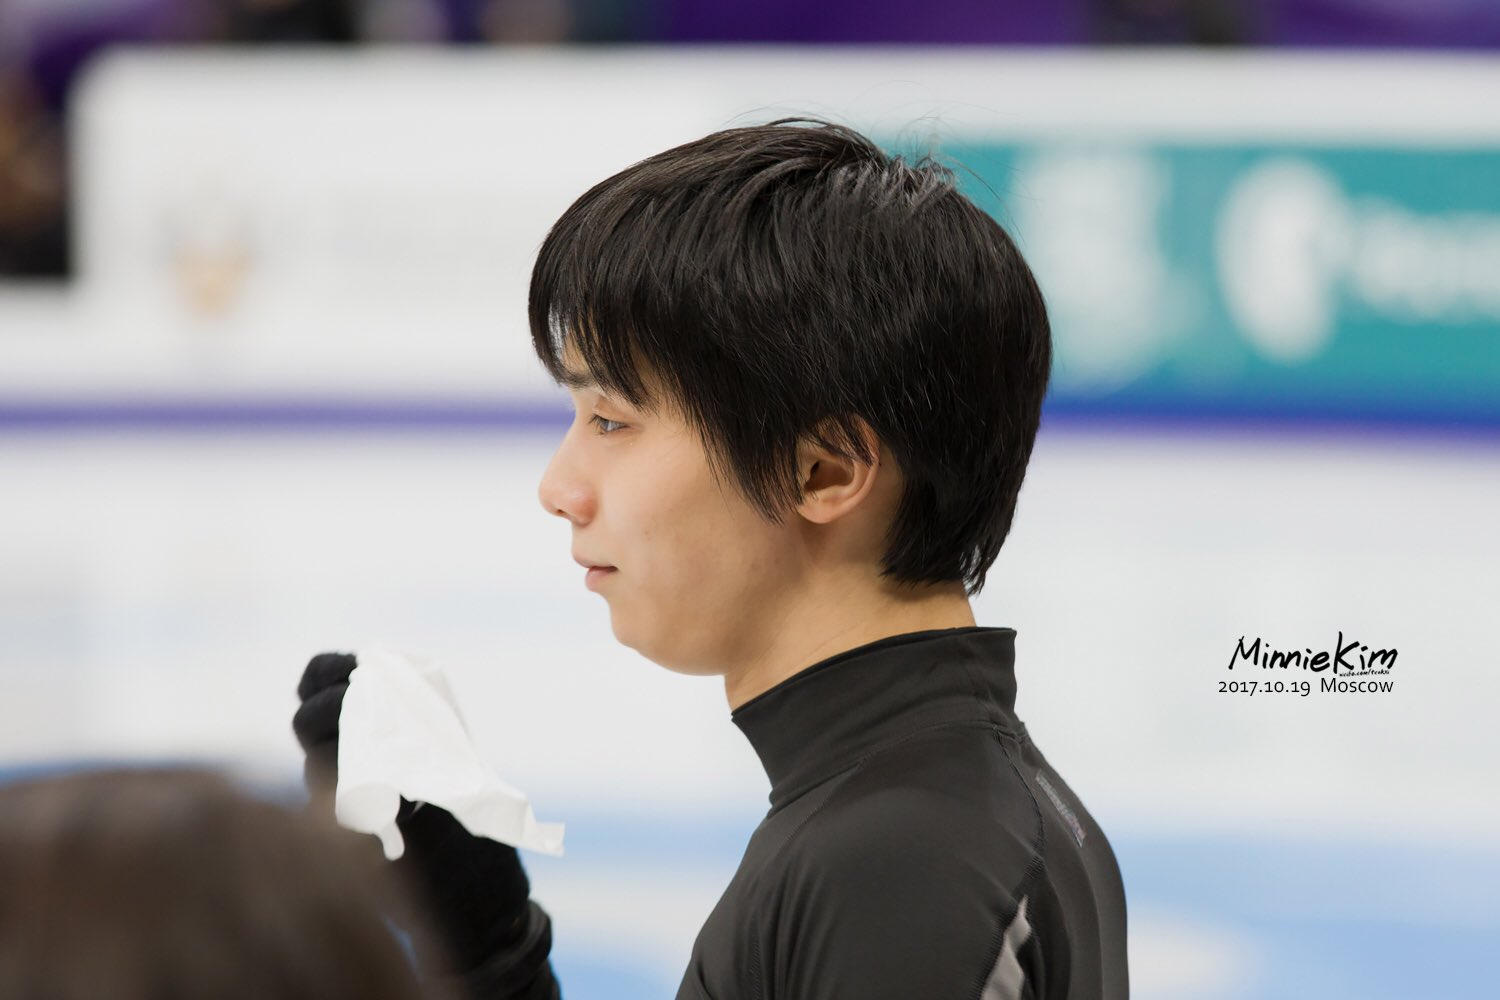 Happy Birthday to Yuzuru Hanyu